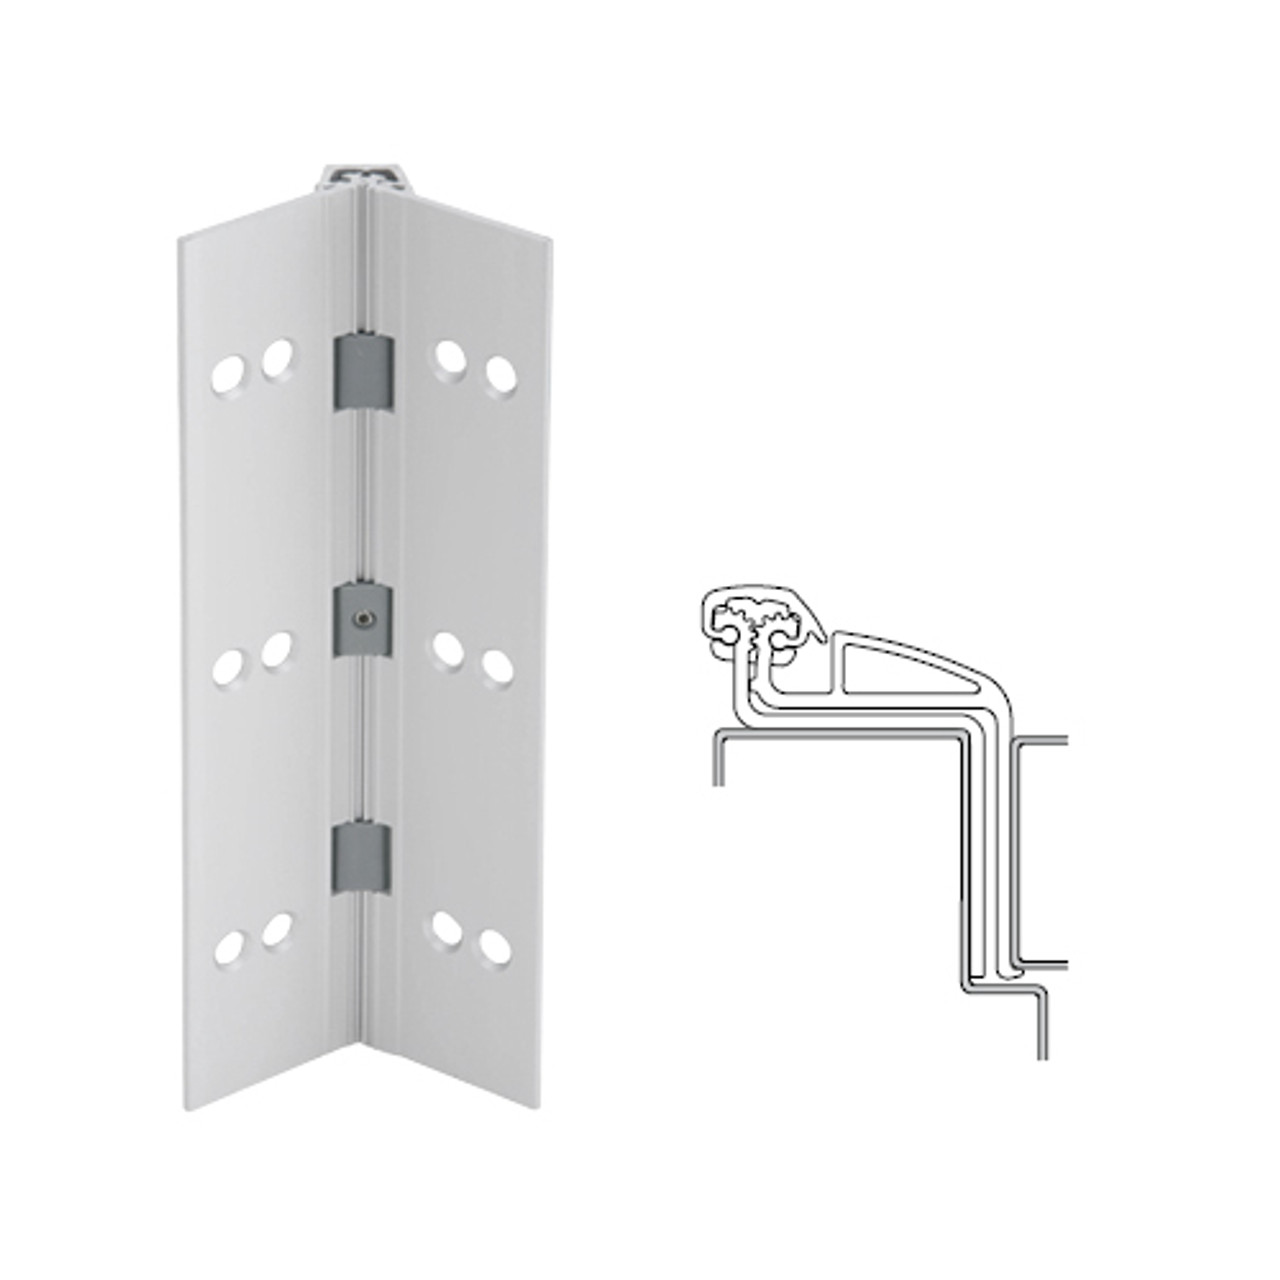 041XY-US28-95-SECWDWD IVES Full Mortise Continuous Geared Hinges with Security Screws - Hex Pin Drive in Satin Aluminum